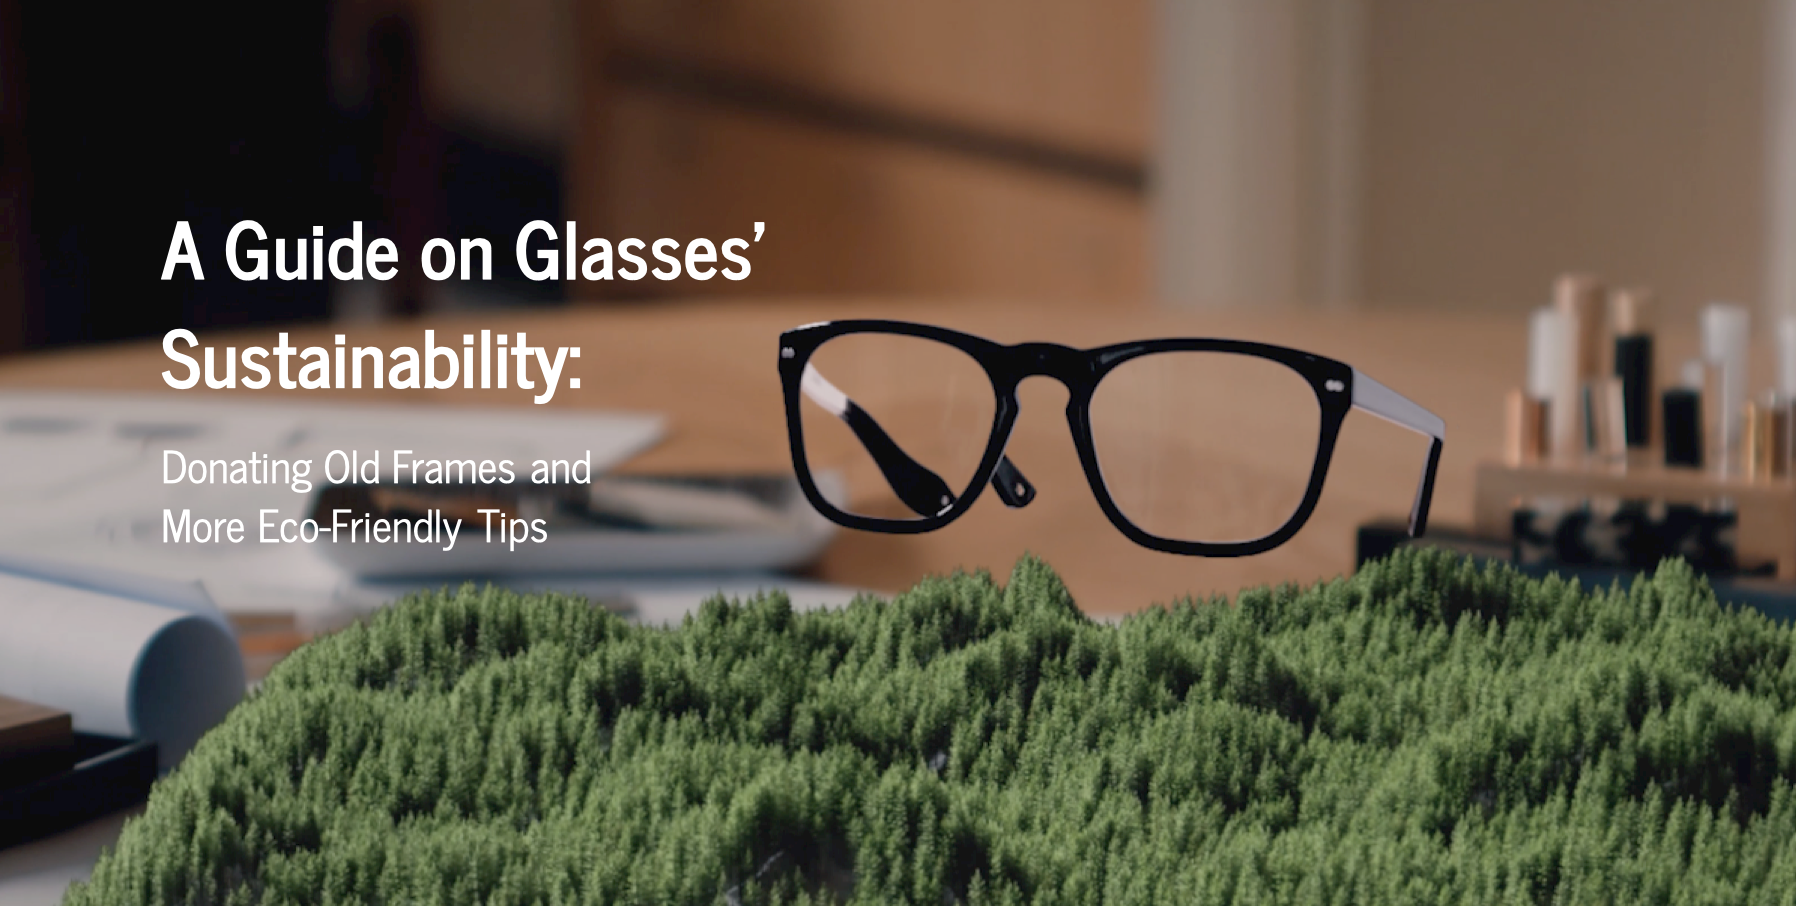 Glasses' Sustainability: Donating Old Frames and More Eco-Friendly Tips